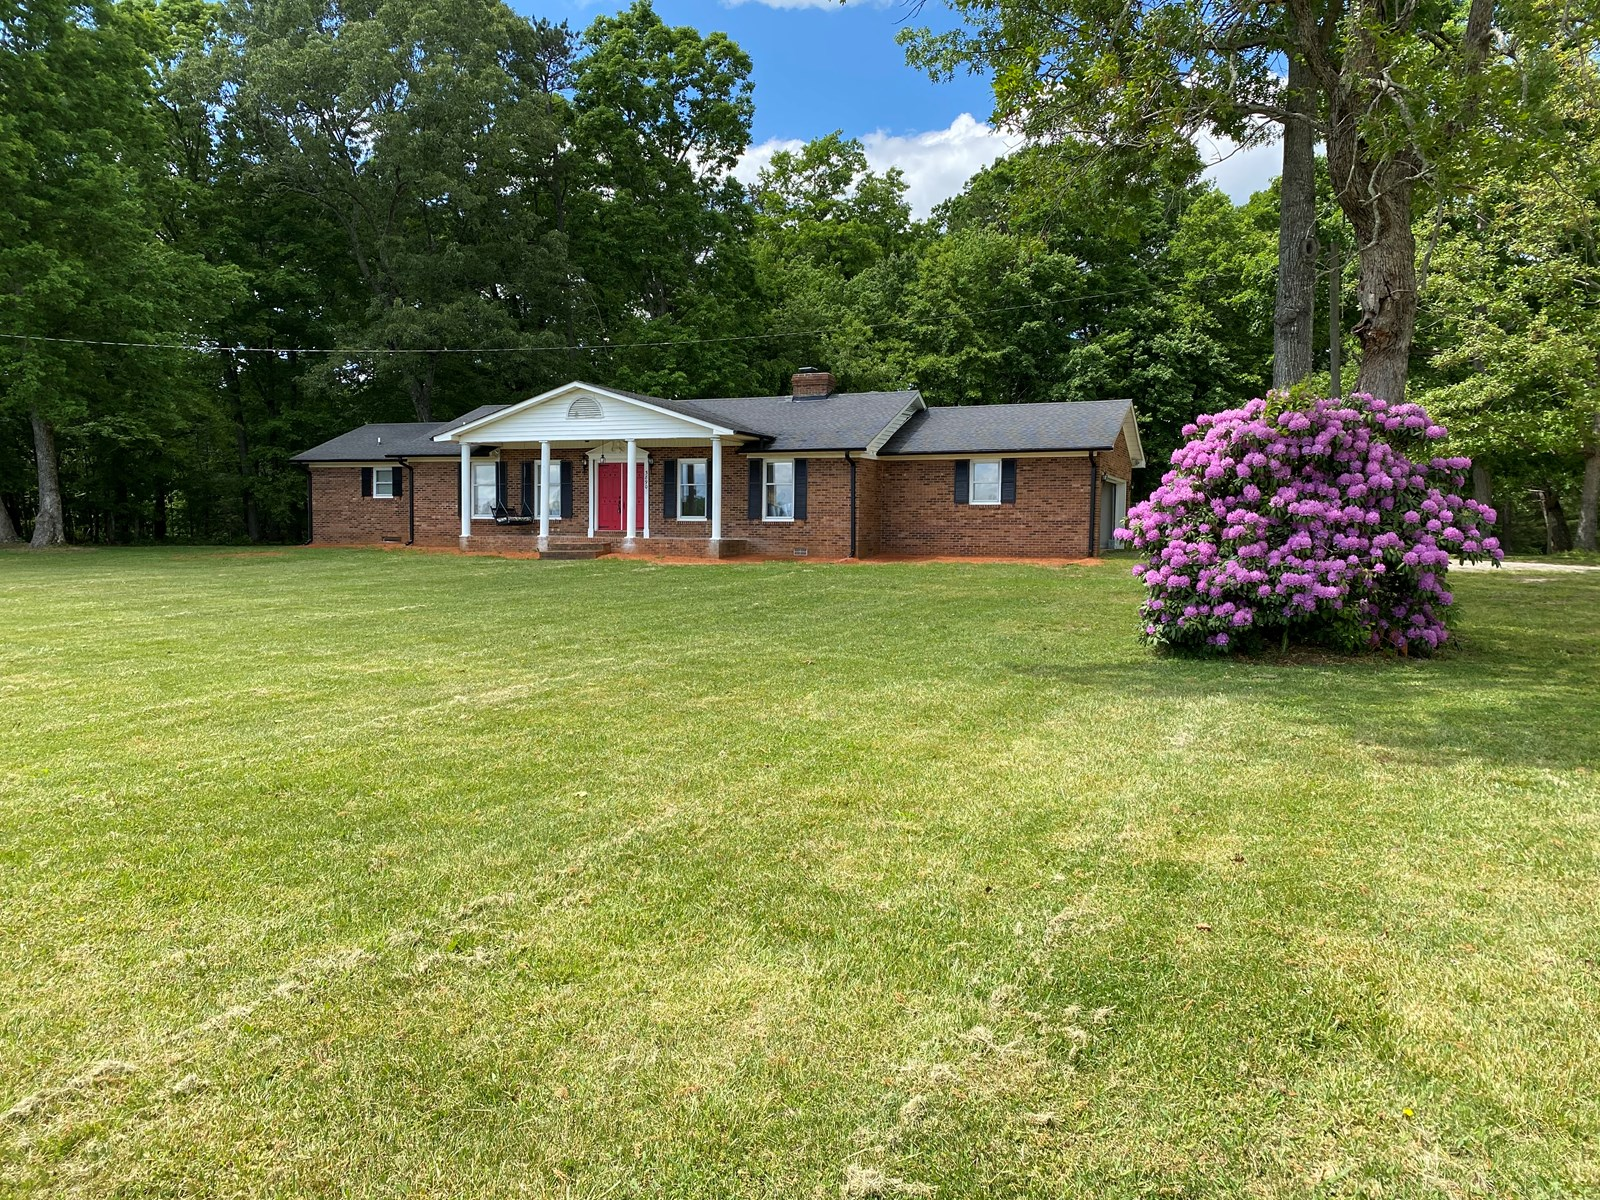 Home For Sale In Pilot Mountain North Carolina 27041